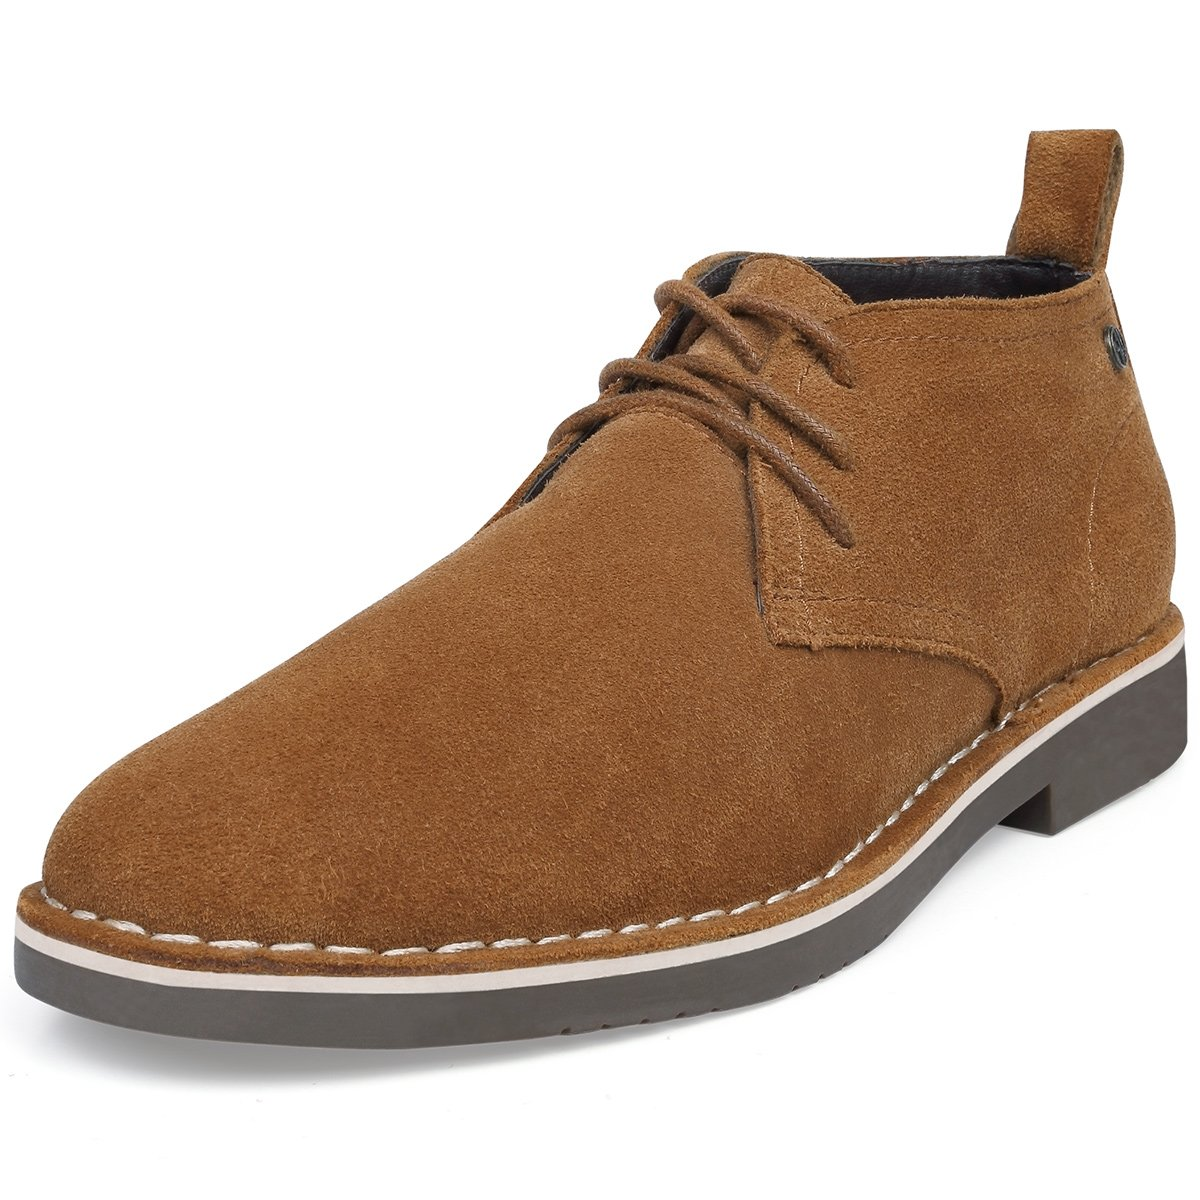 GOLAIMAN Men's Suede Chukka Boot Shoes Casual Lace Up Desert Boot